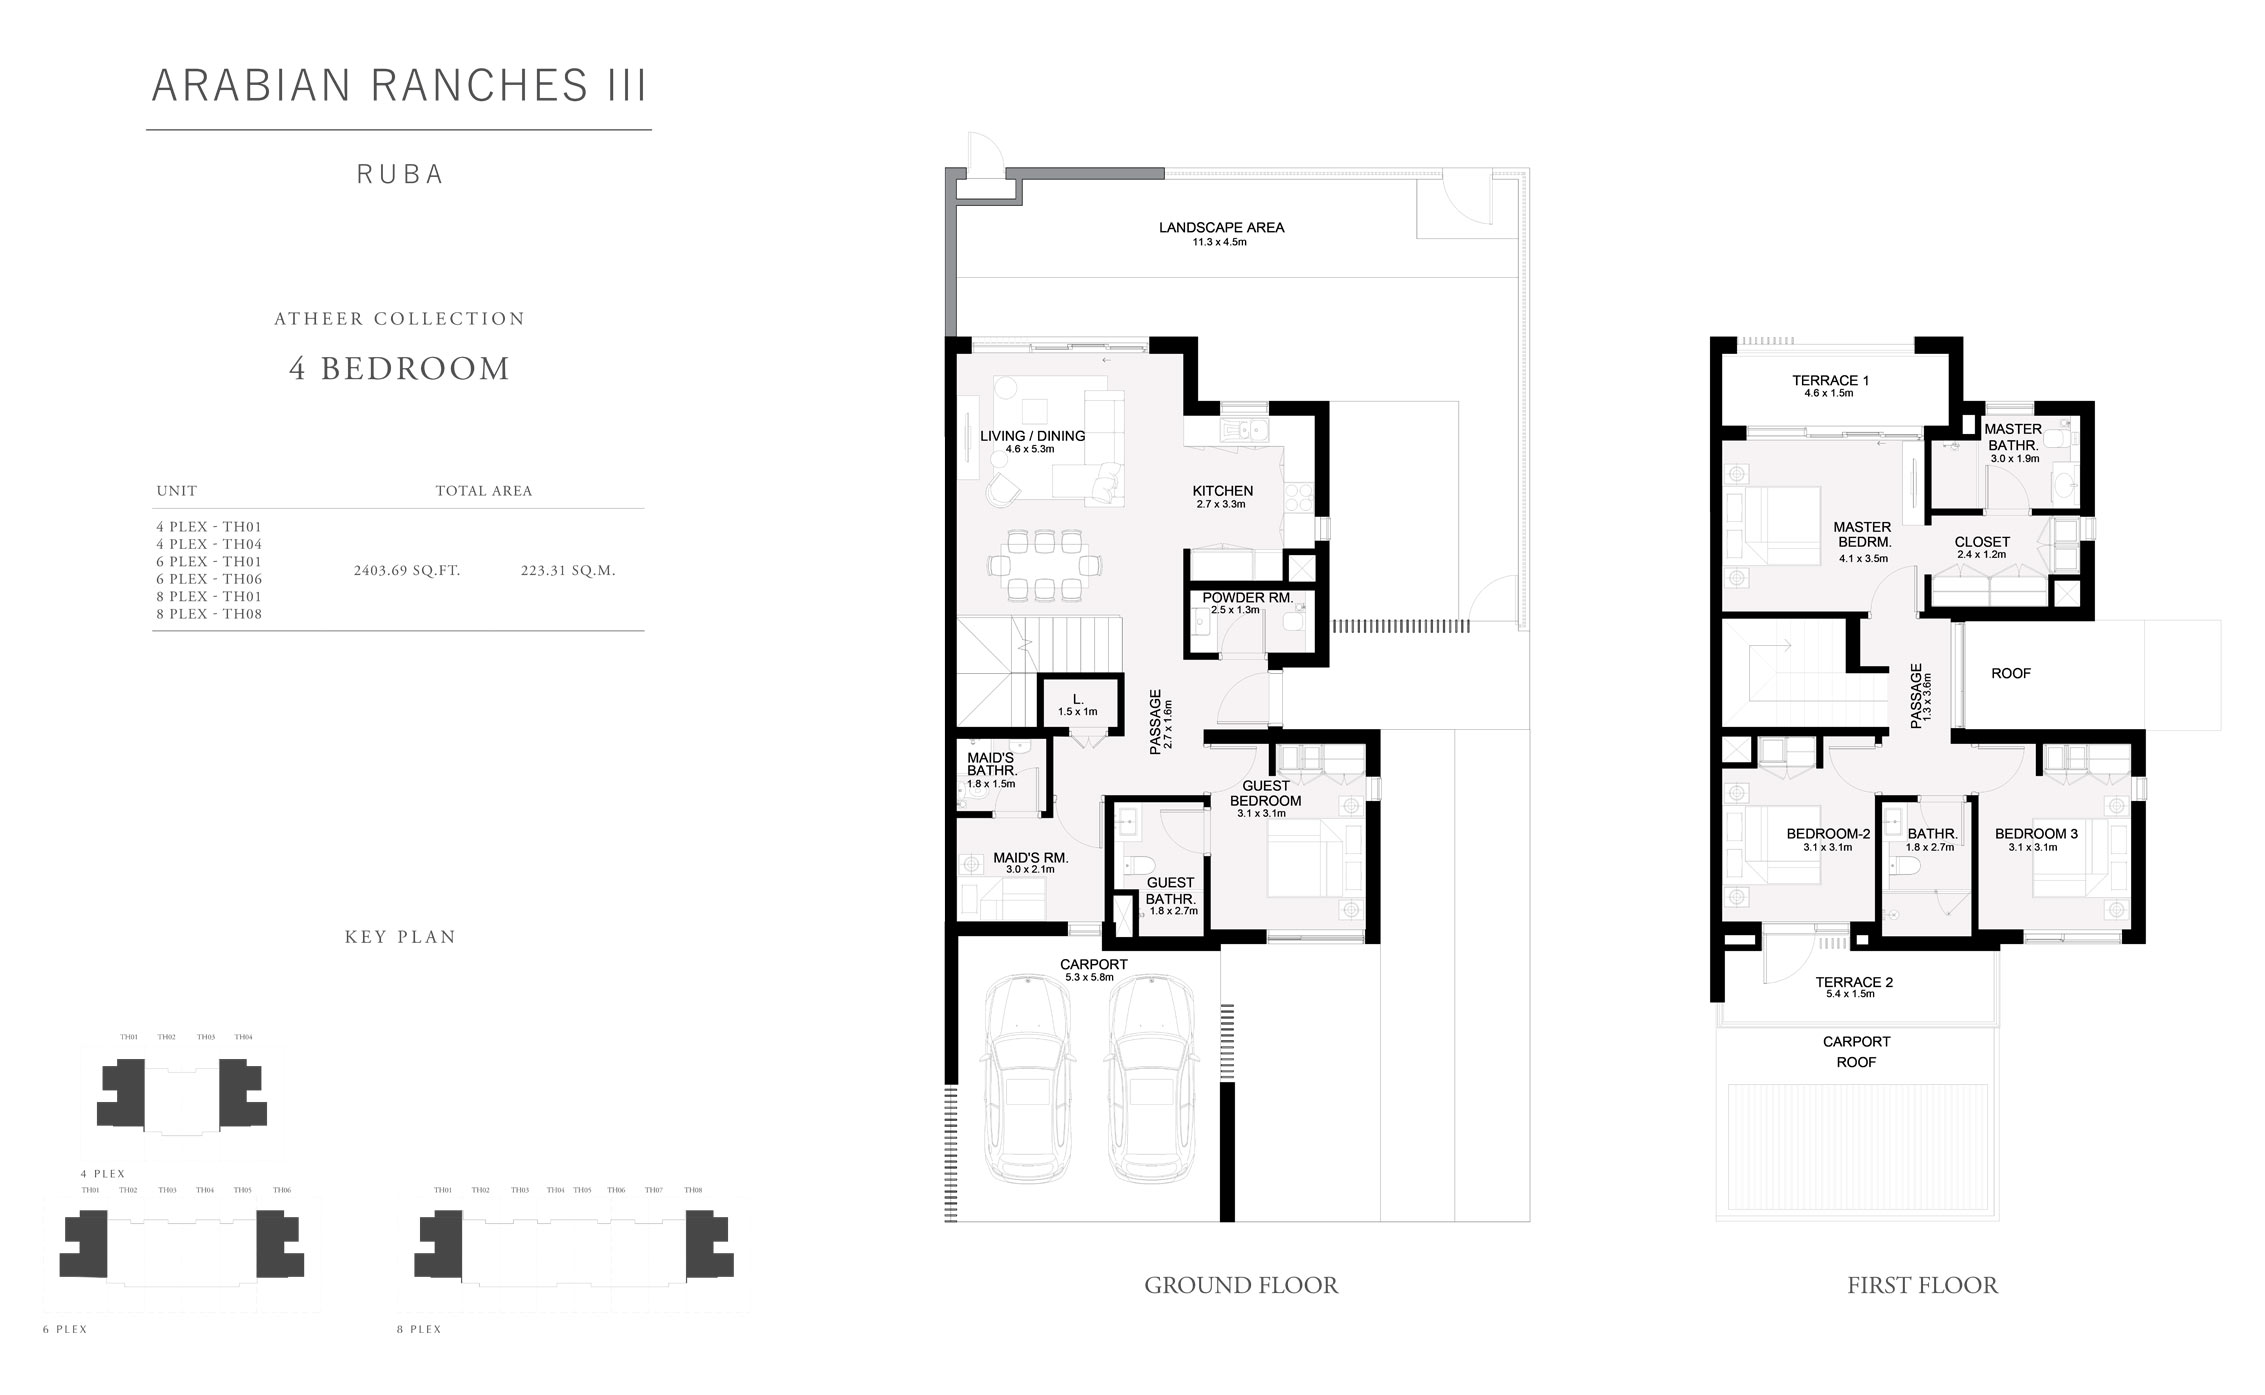 Atheer Collection 4 Bedroom, Size 2403 Sq Ft